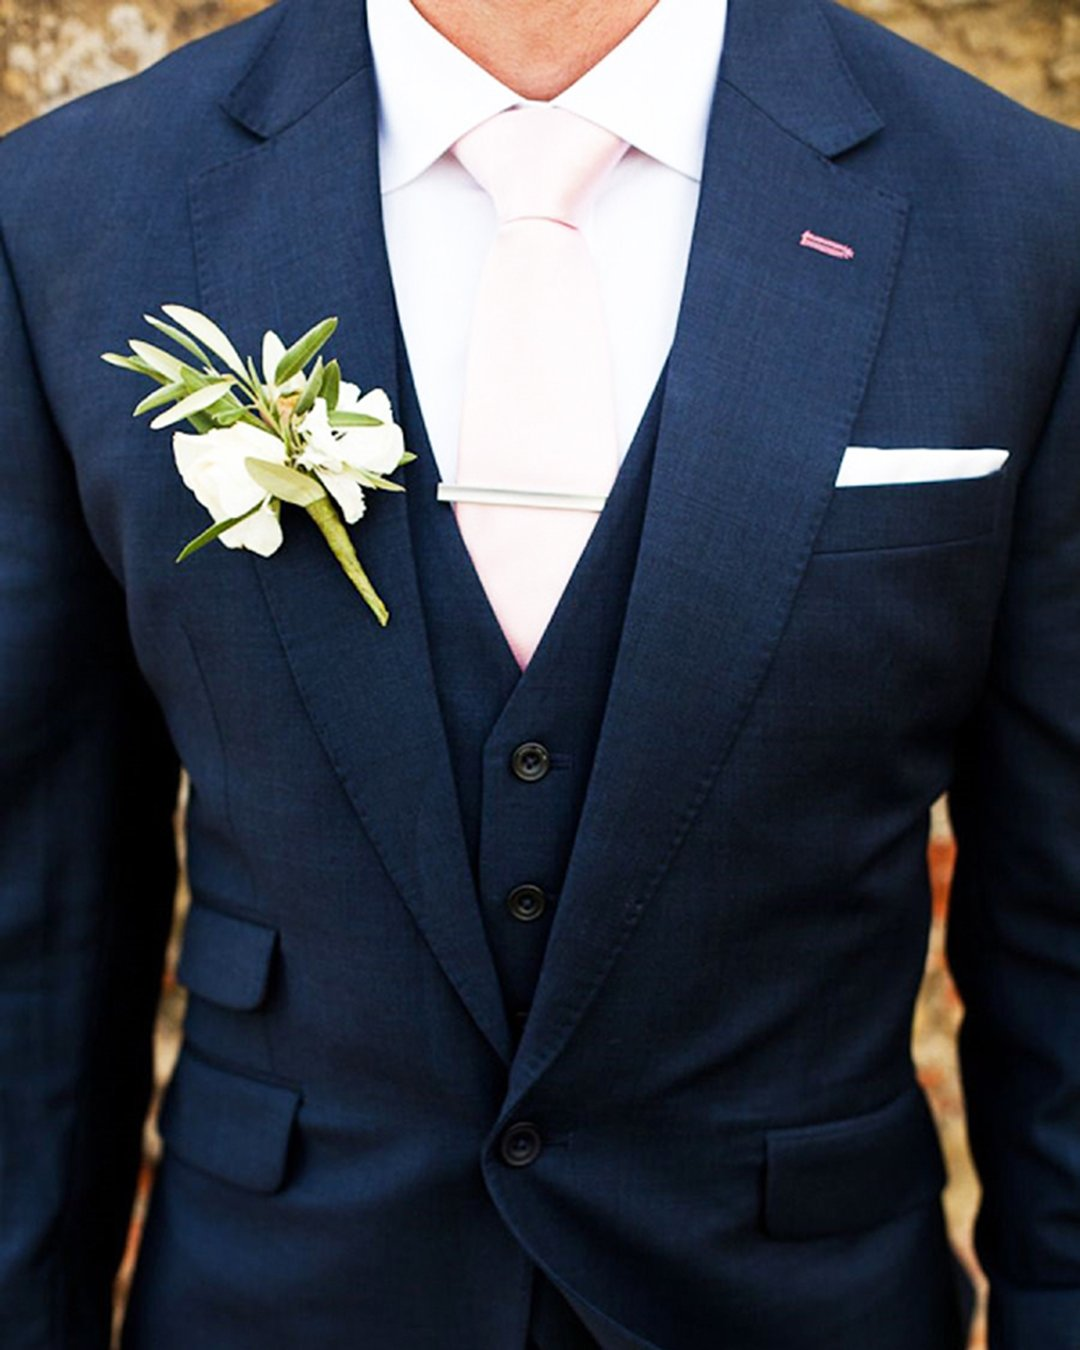 groom suits navy with tie jacket and boutonniere m and j photography